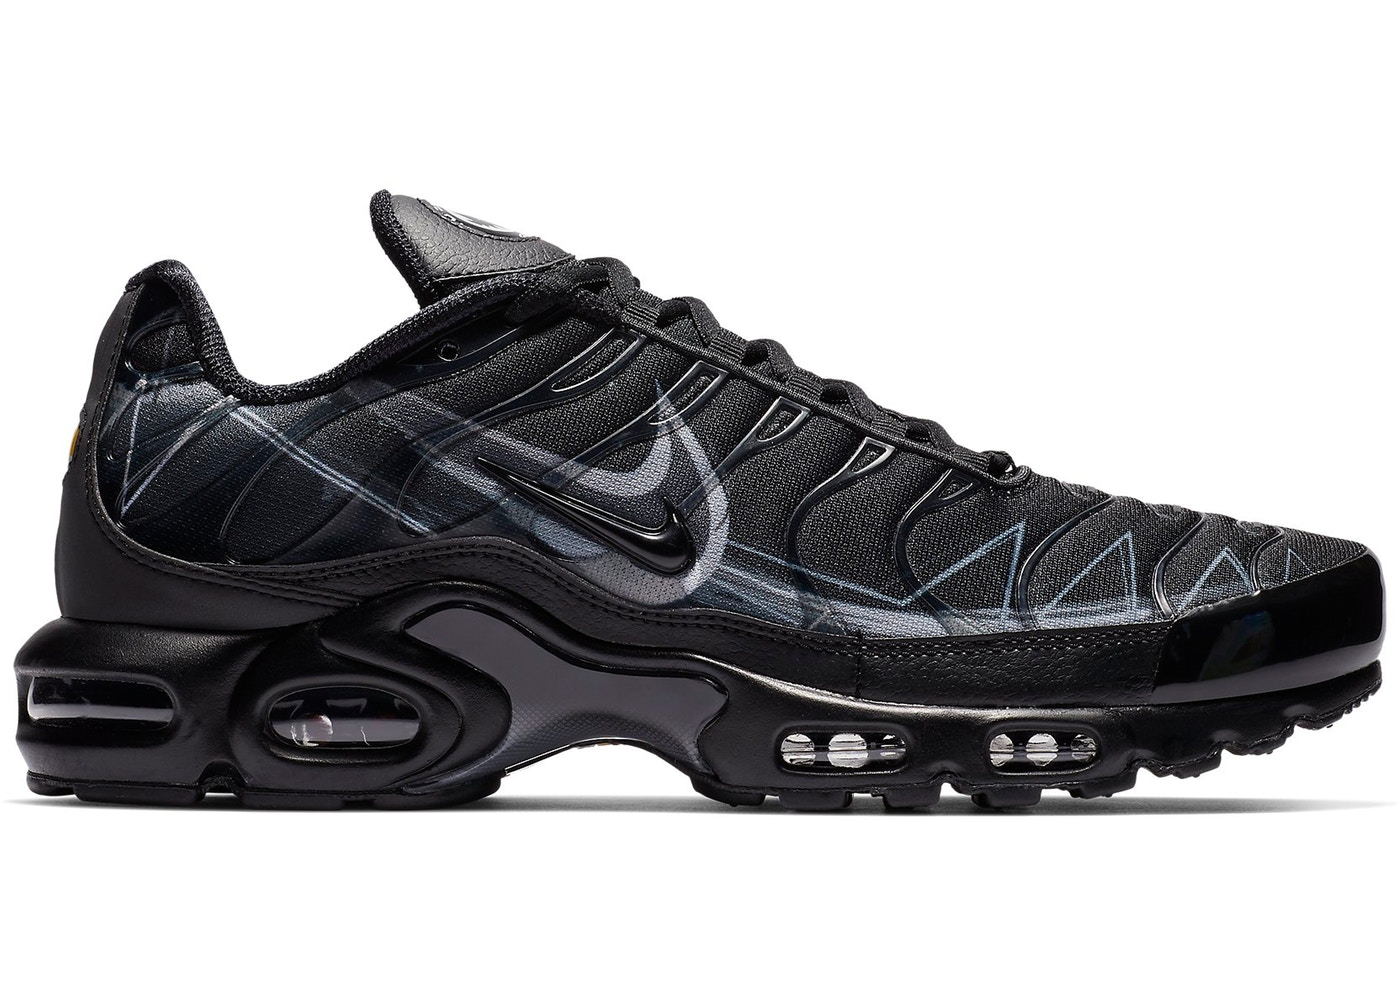 newest f8edb 862db Air Max Plus La Requin Black